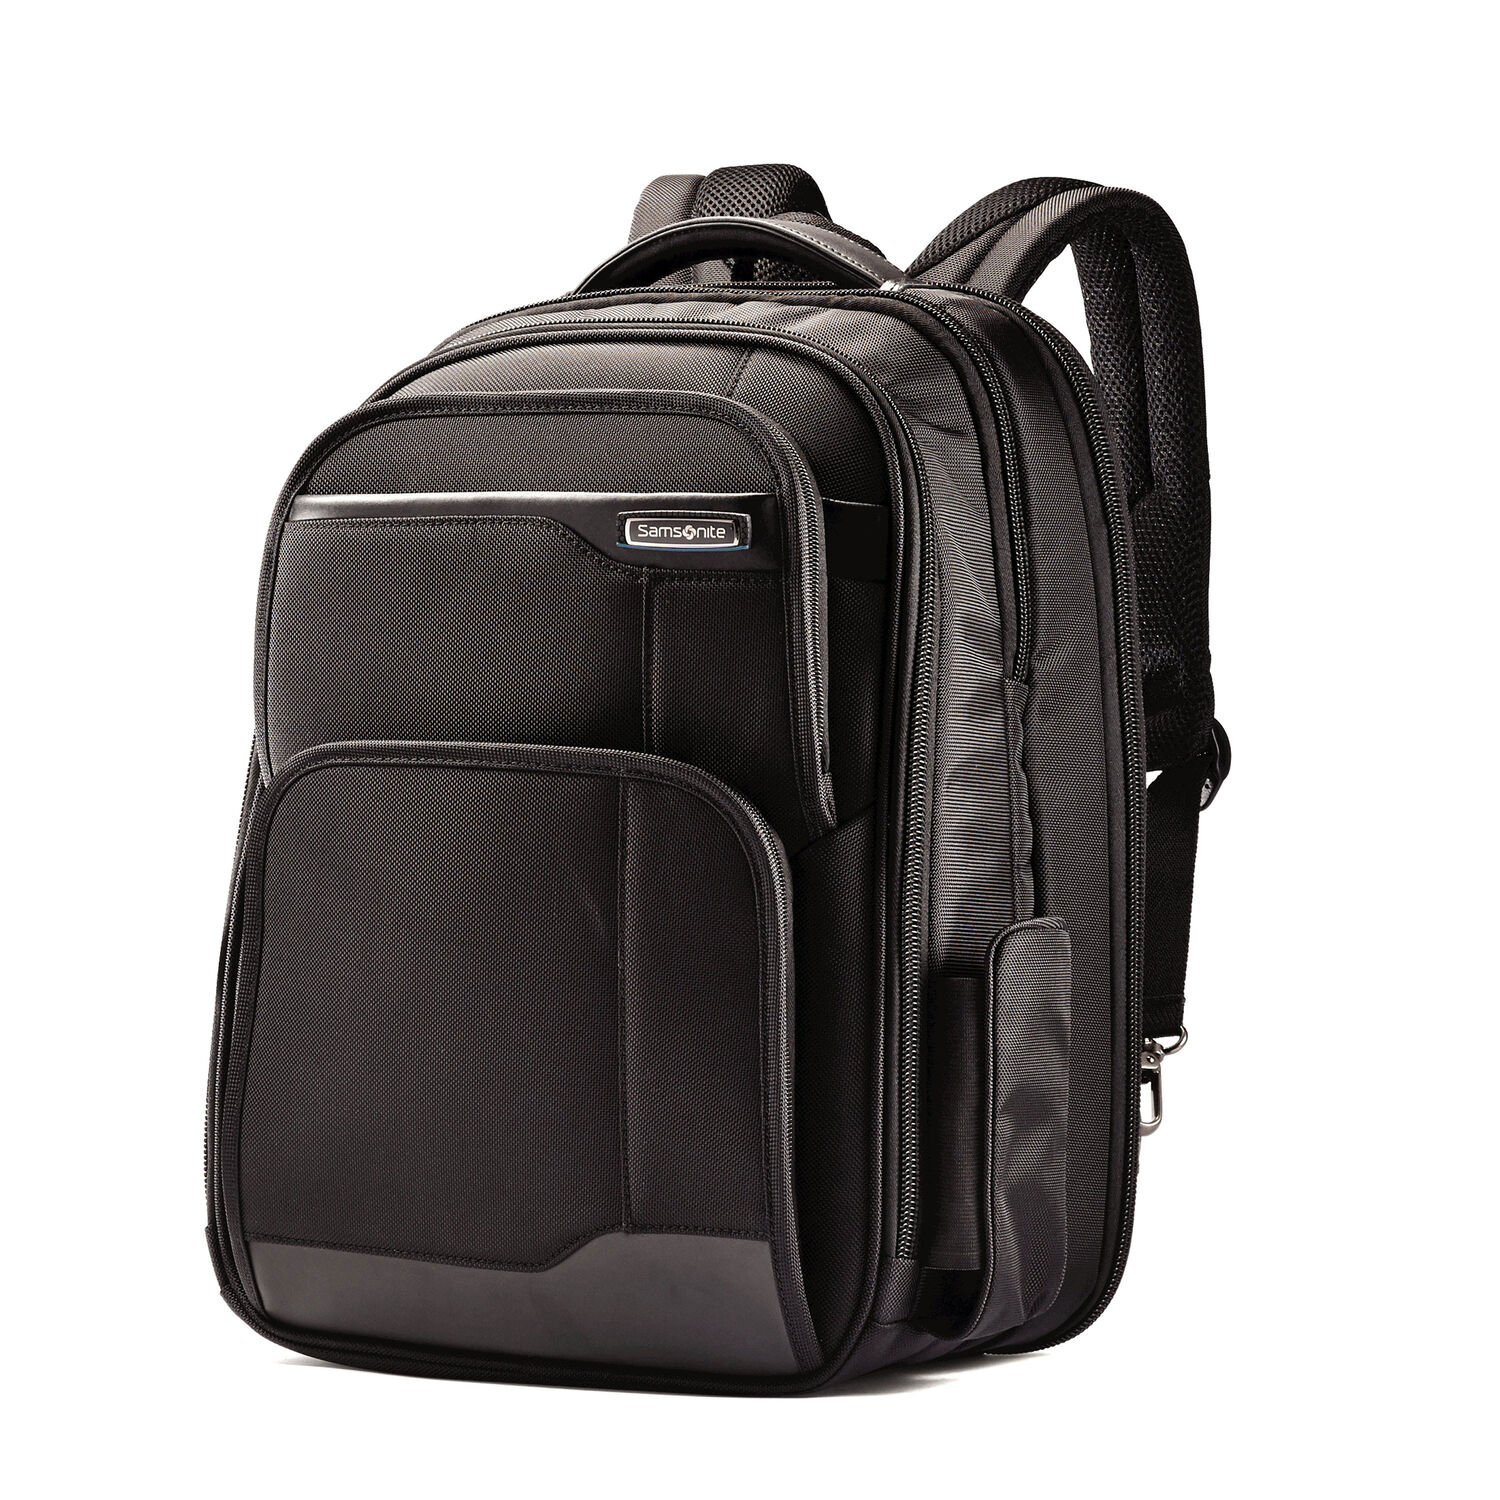 samsonite quadrion backpack. Black Bedroom Furniture Sets. Home Design Ideas